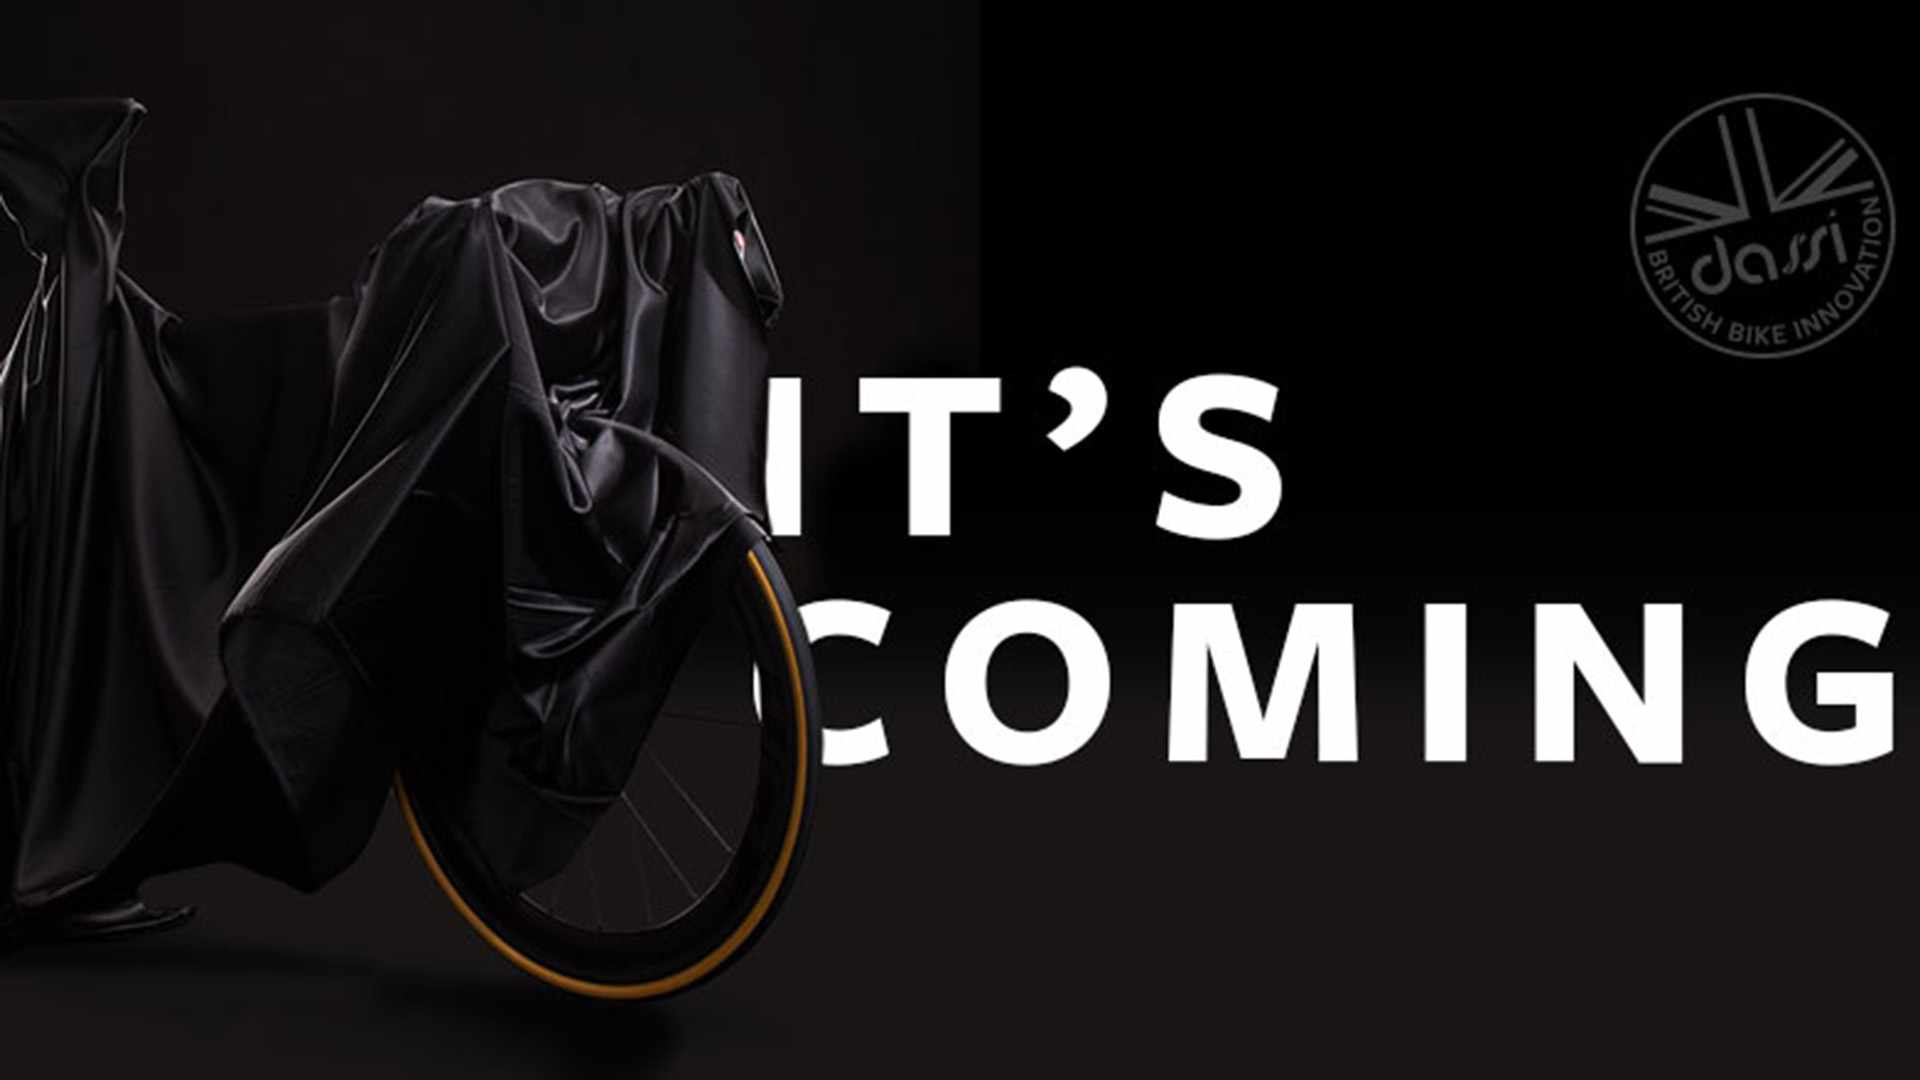 Dassi will be unveiling its newest bike, a carbon model manufactured and assembled in the UK